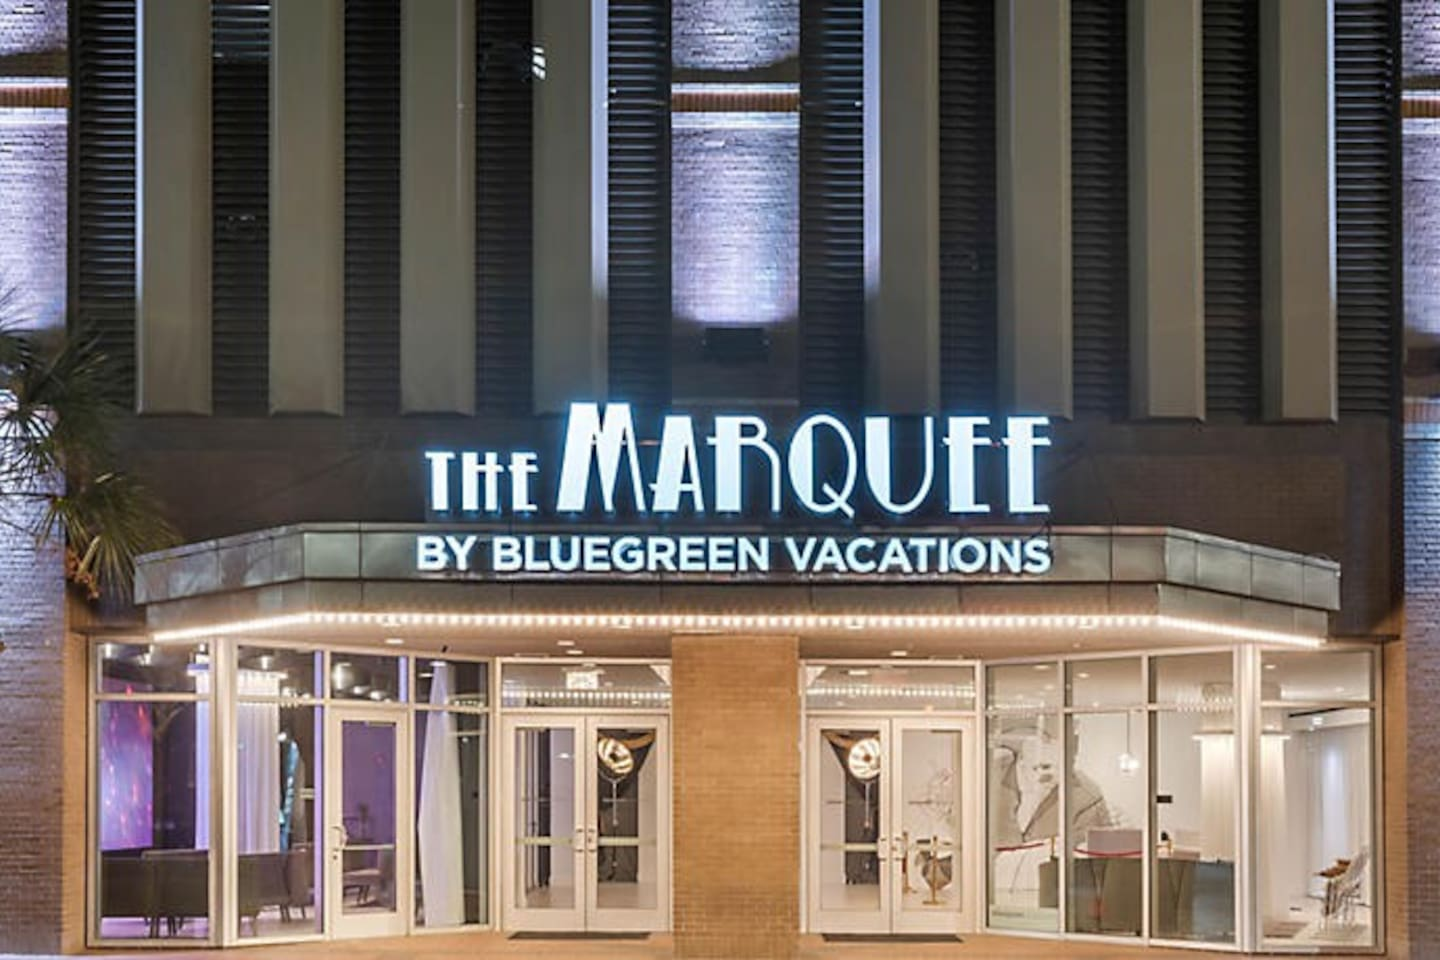 The Marquee entrance